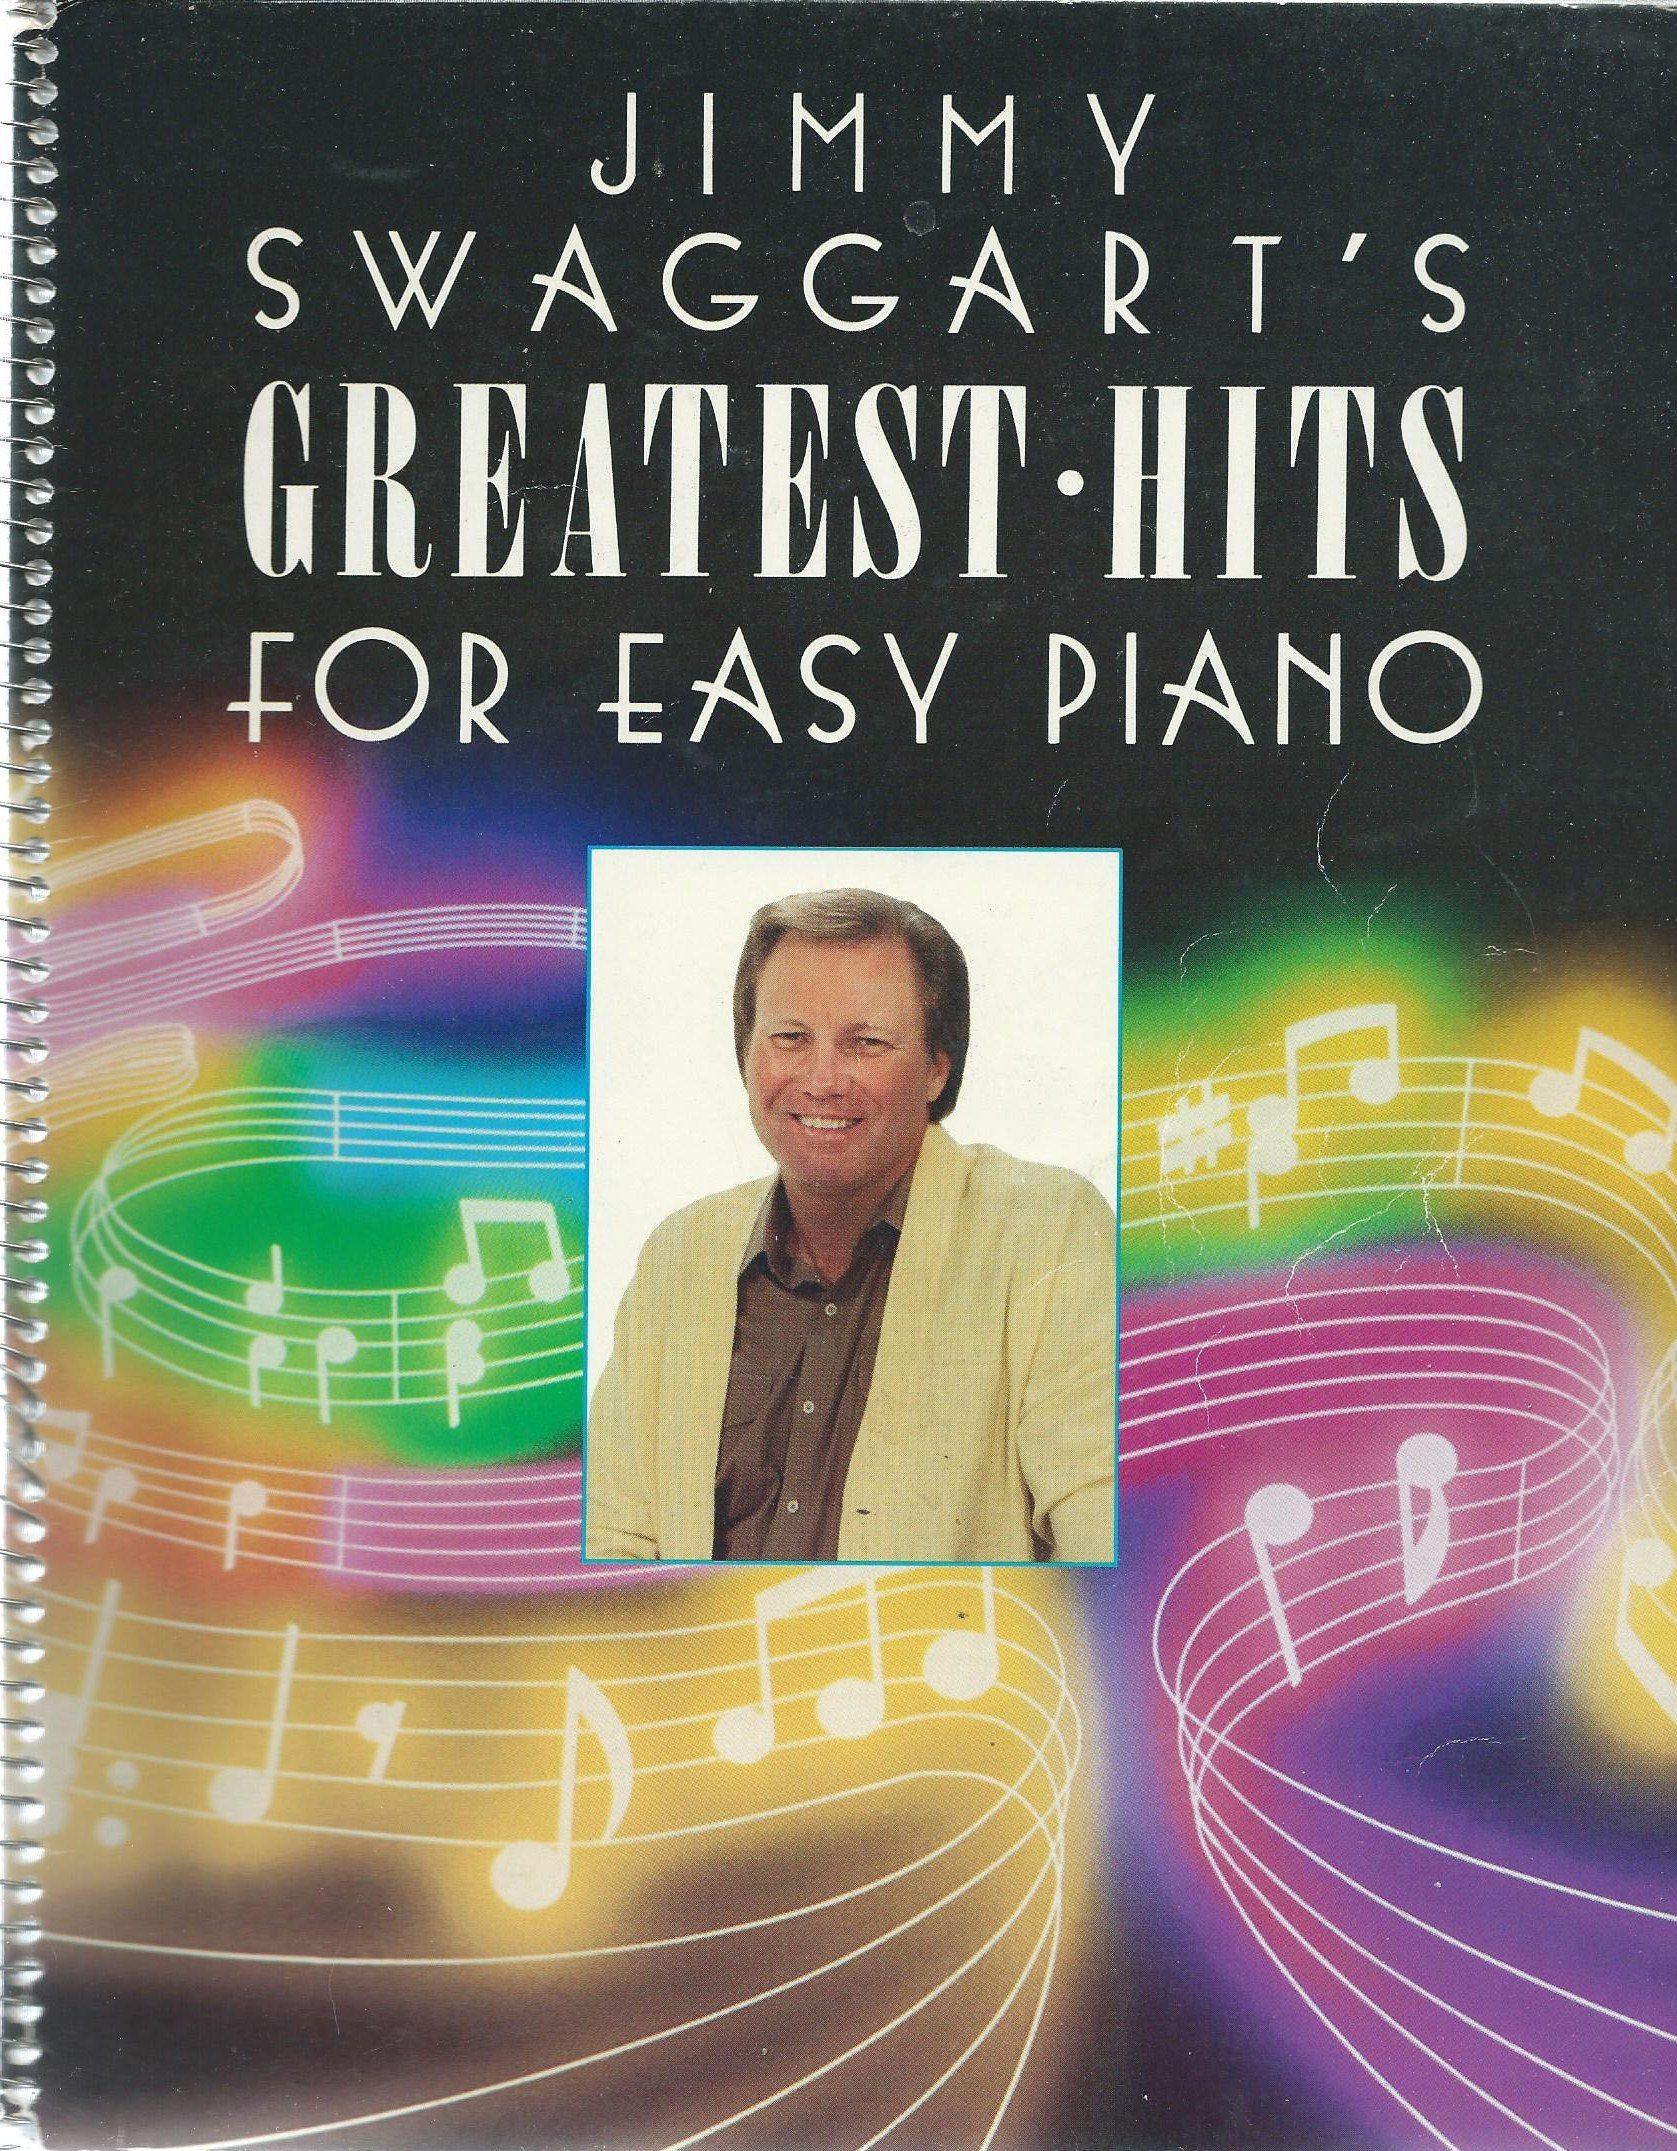 Jimmy Swaggart's Greatest Hits for Easy Piano: Jimmy